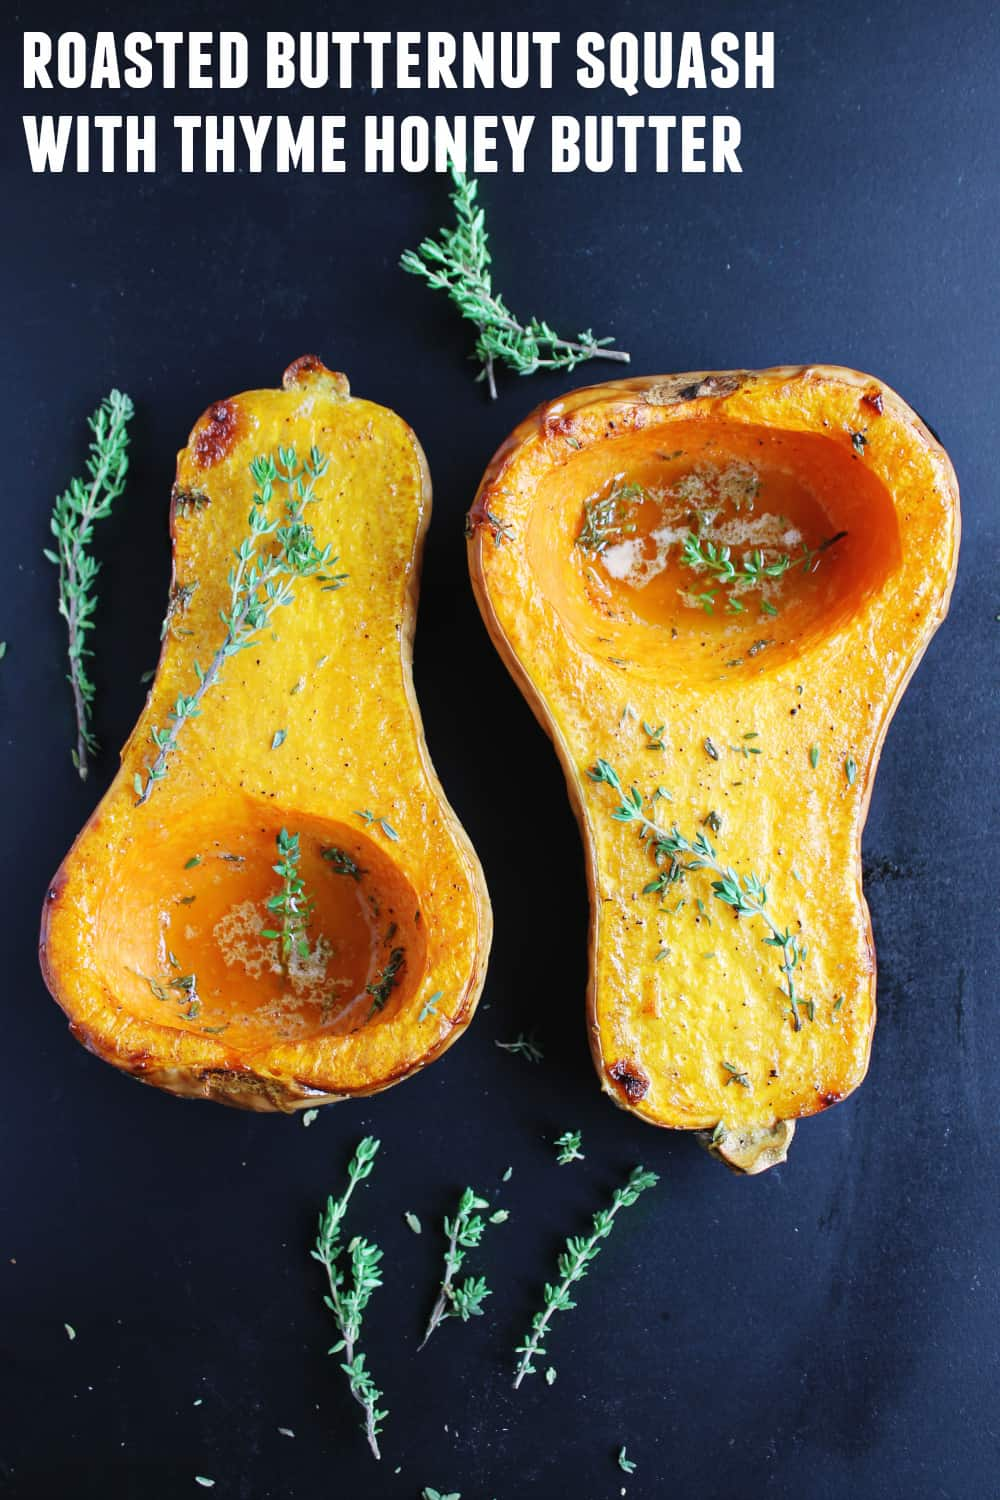 Simple roasted butternut squash with thyme honey butter recipe! The most perfect and delicious Fall side dish. Enjoy as is, or easily mash for tasty mashed squash. SO GOOD!